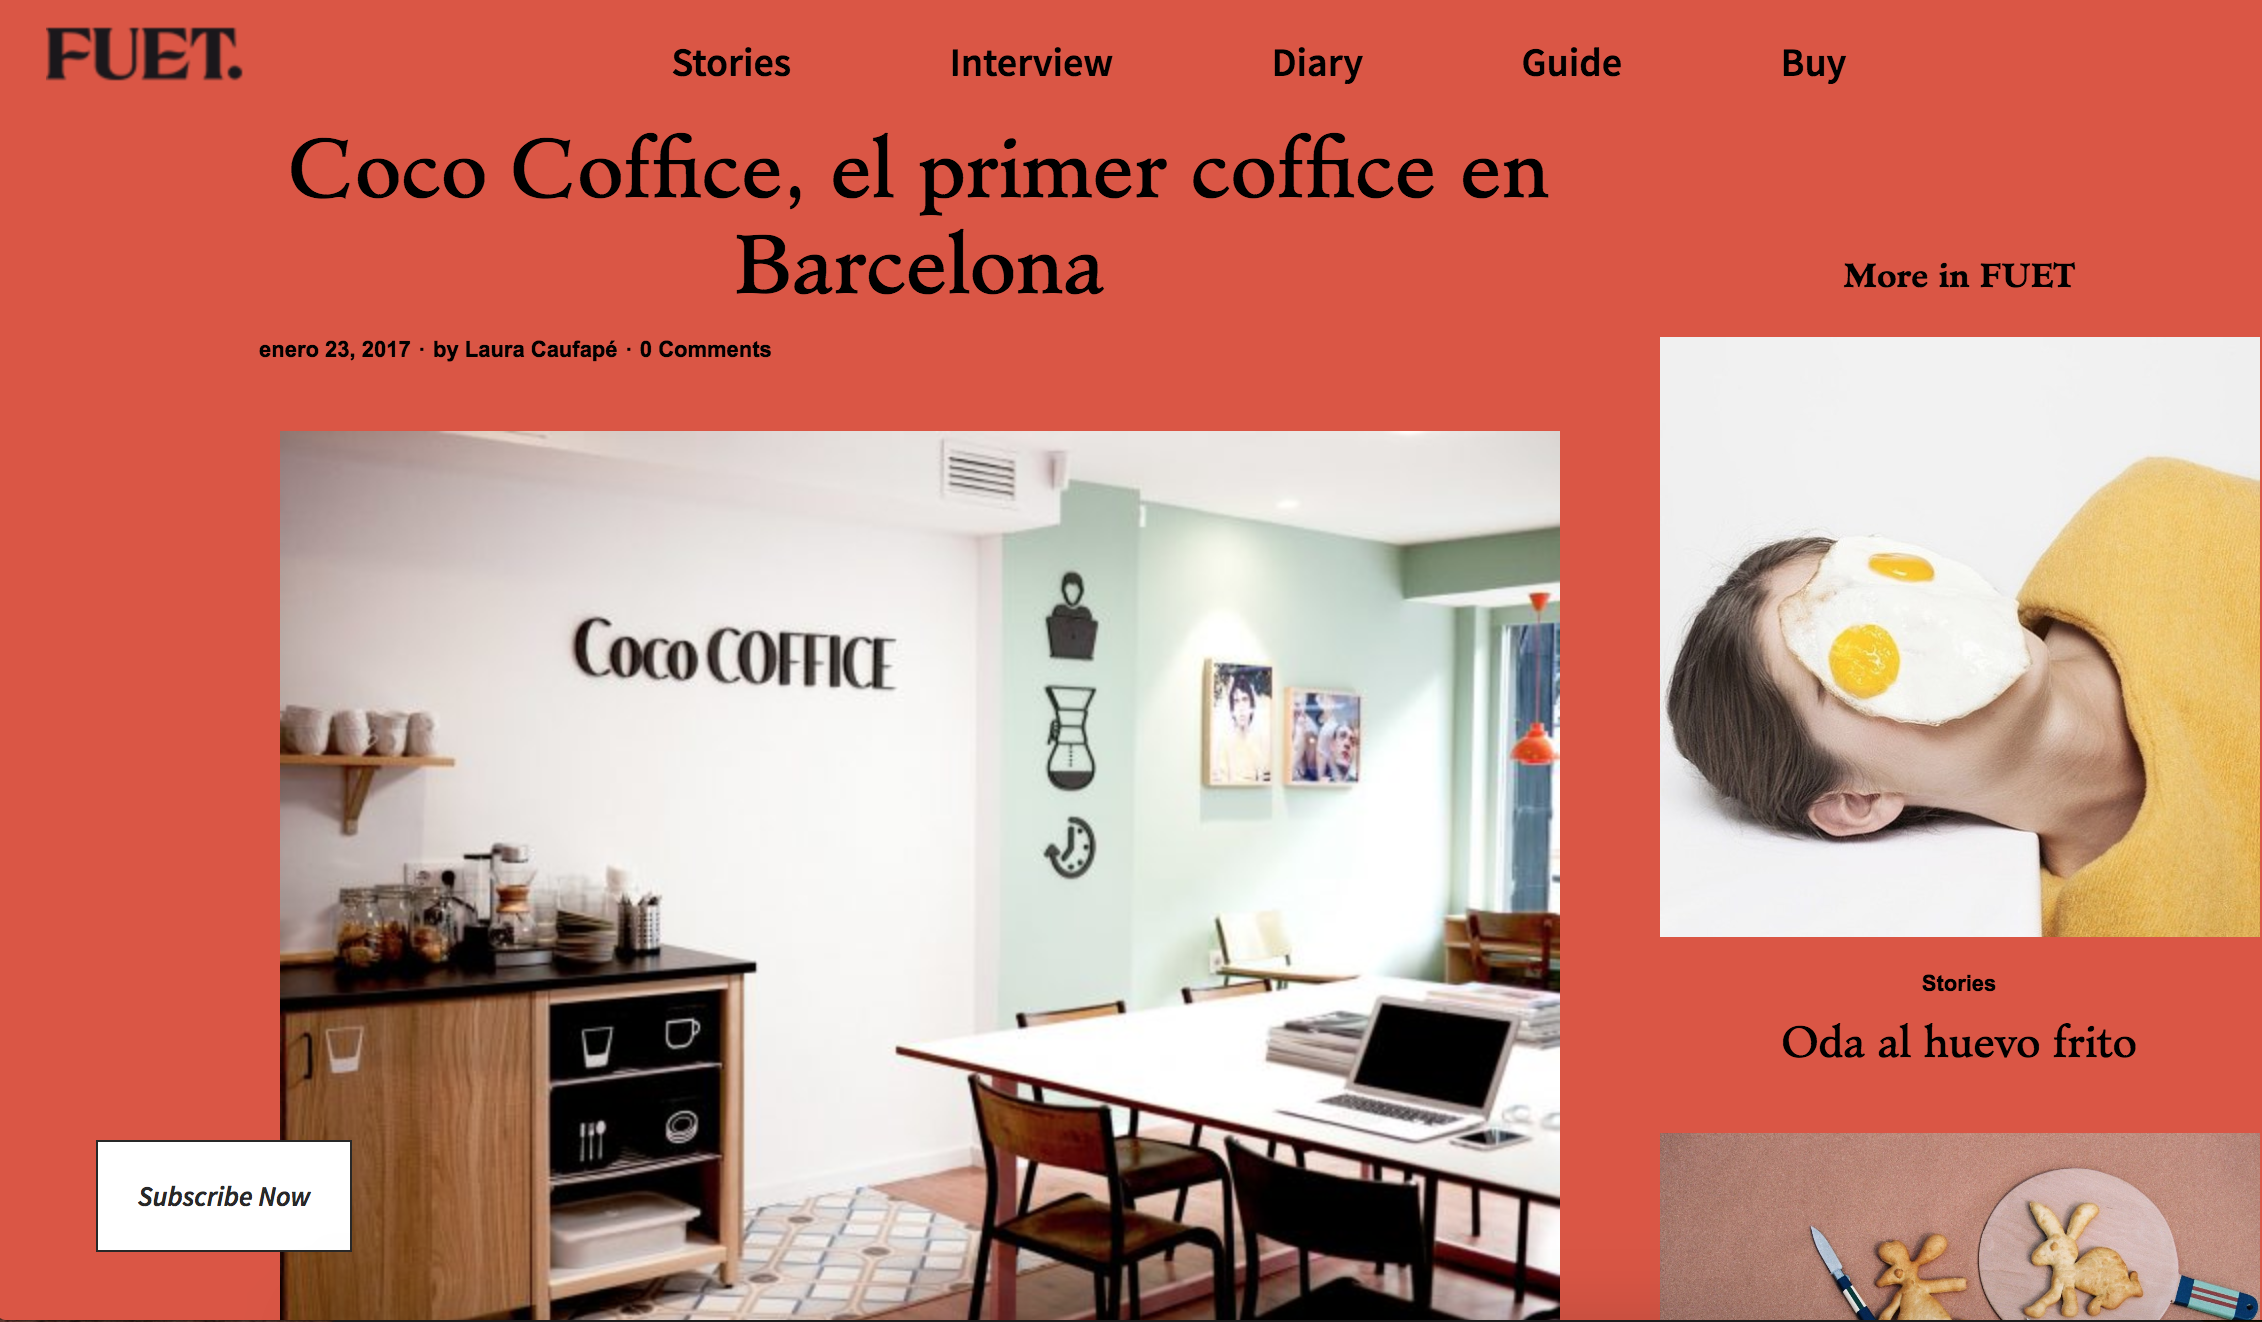 Coco Coffice, the first coffice in Barcelona